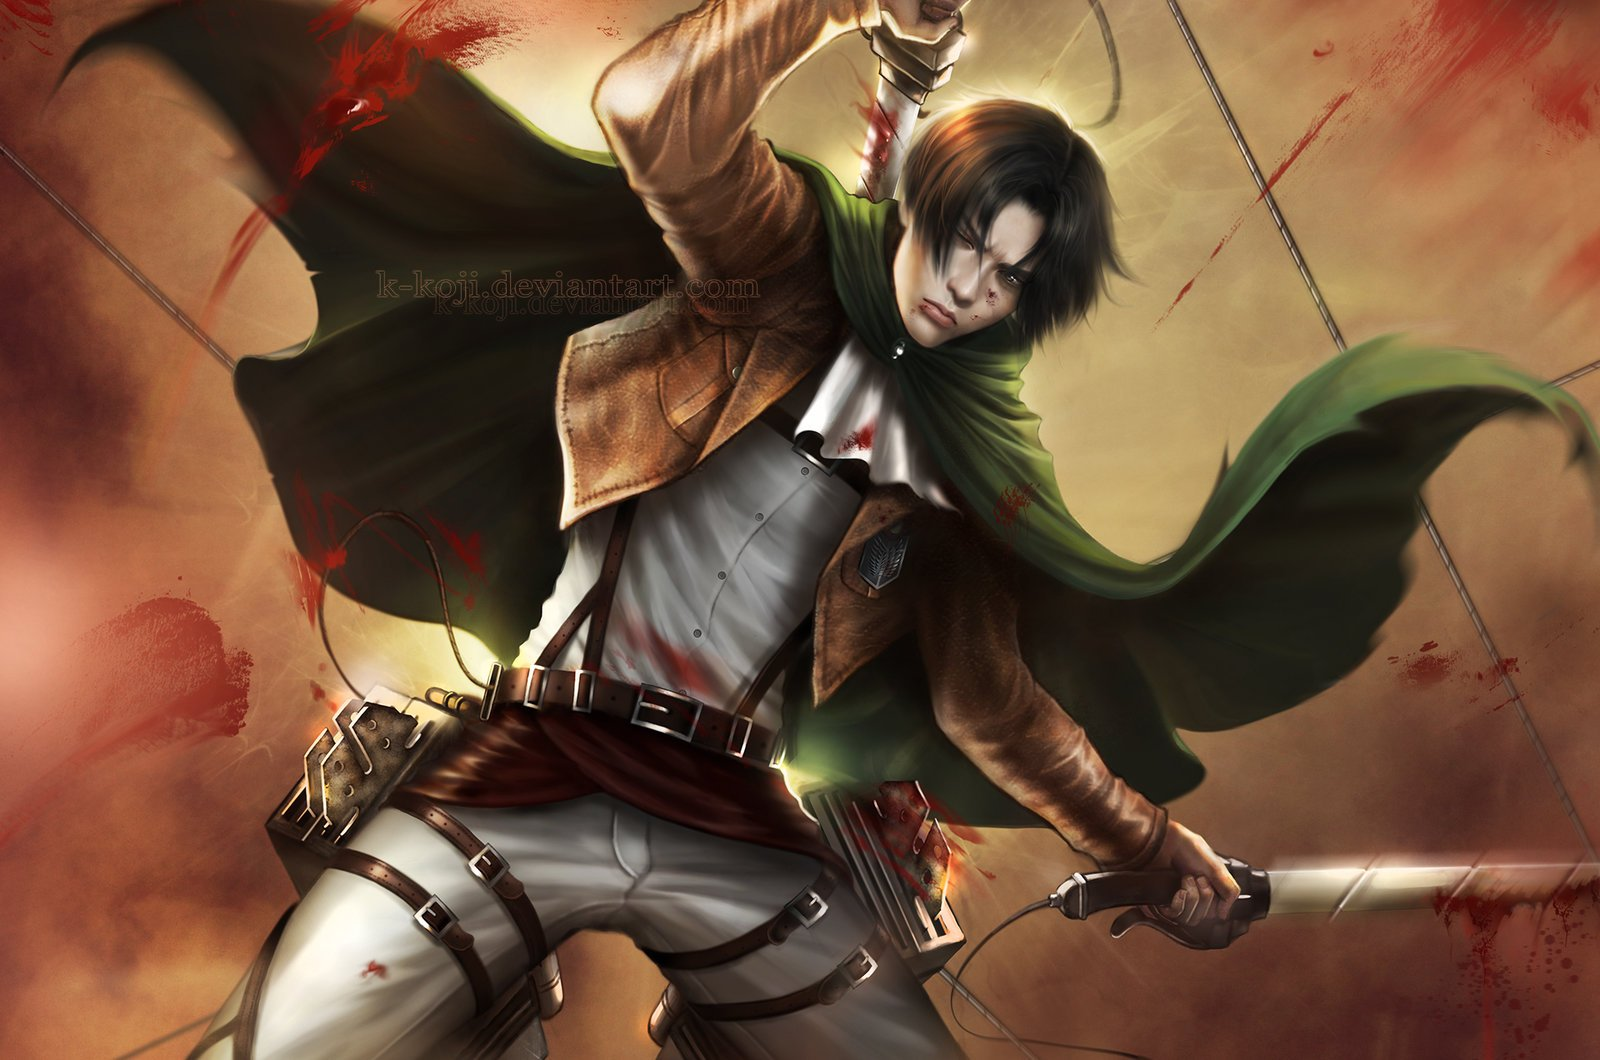 Captain Levi Iphone Wallpaper Aot captain levi wallpaper1 1600x1060